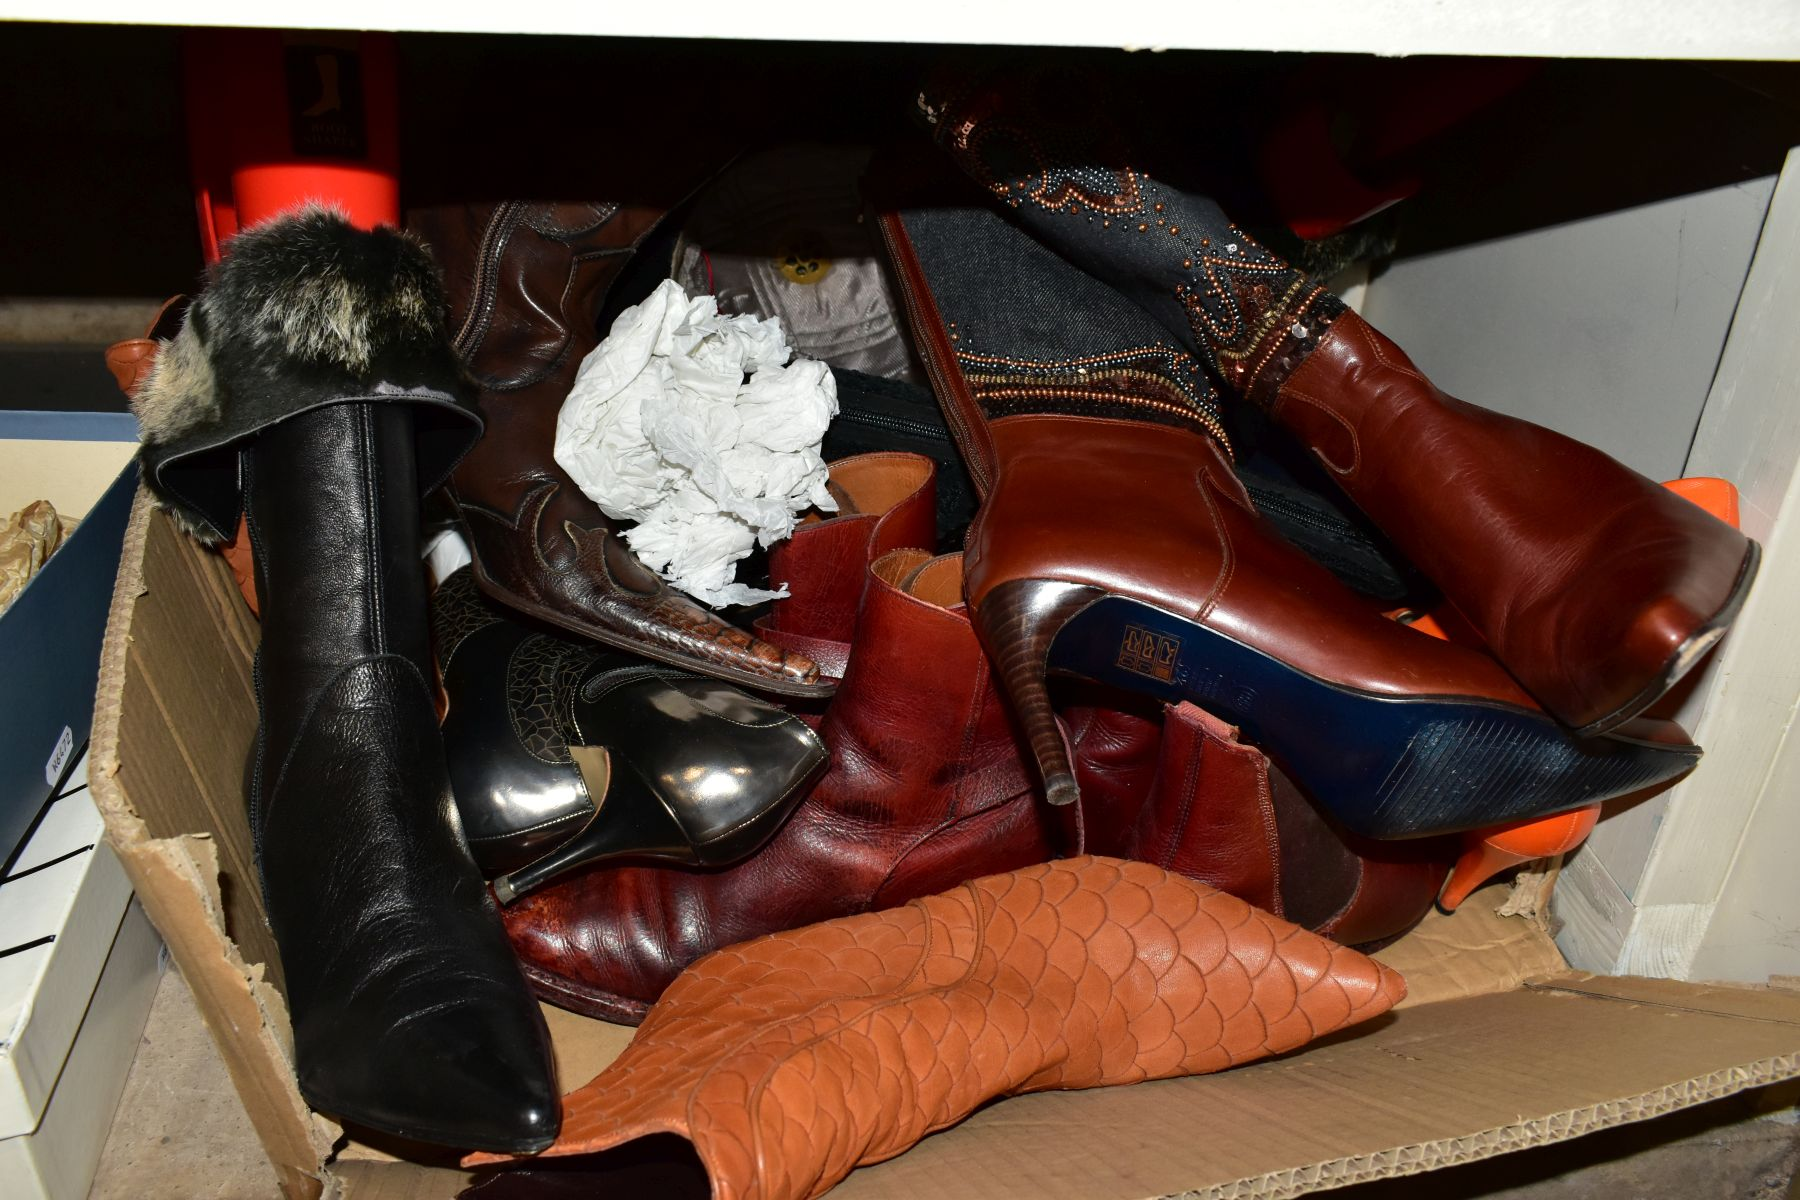 A QUANTITY OF LADIES SHOES AND HANDBAGS, EVENING BAGS, BOXED AND LOOSE, including a boxed pair of - Image 2 of 7